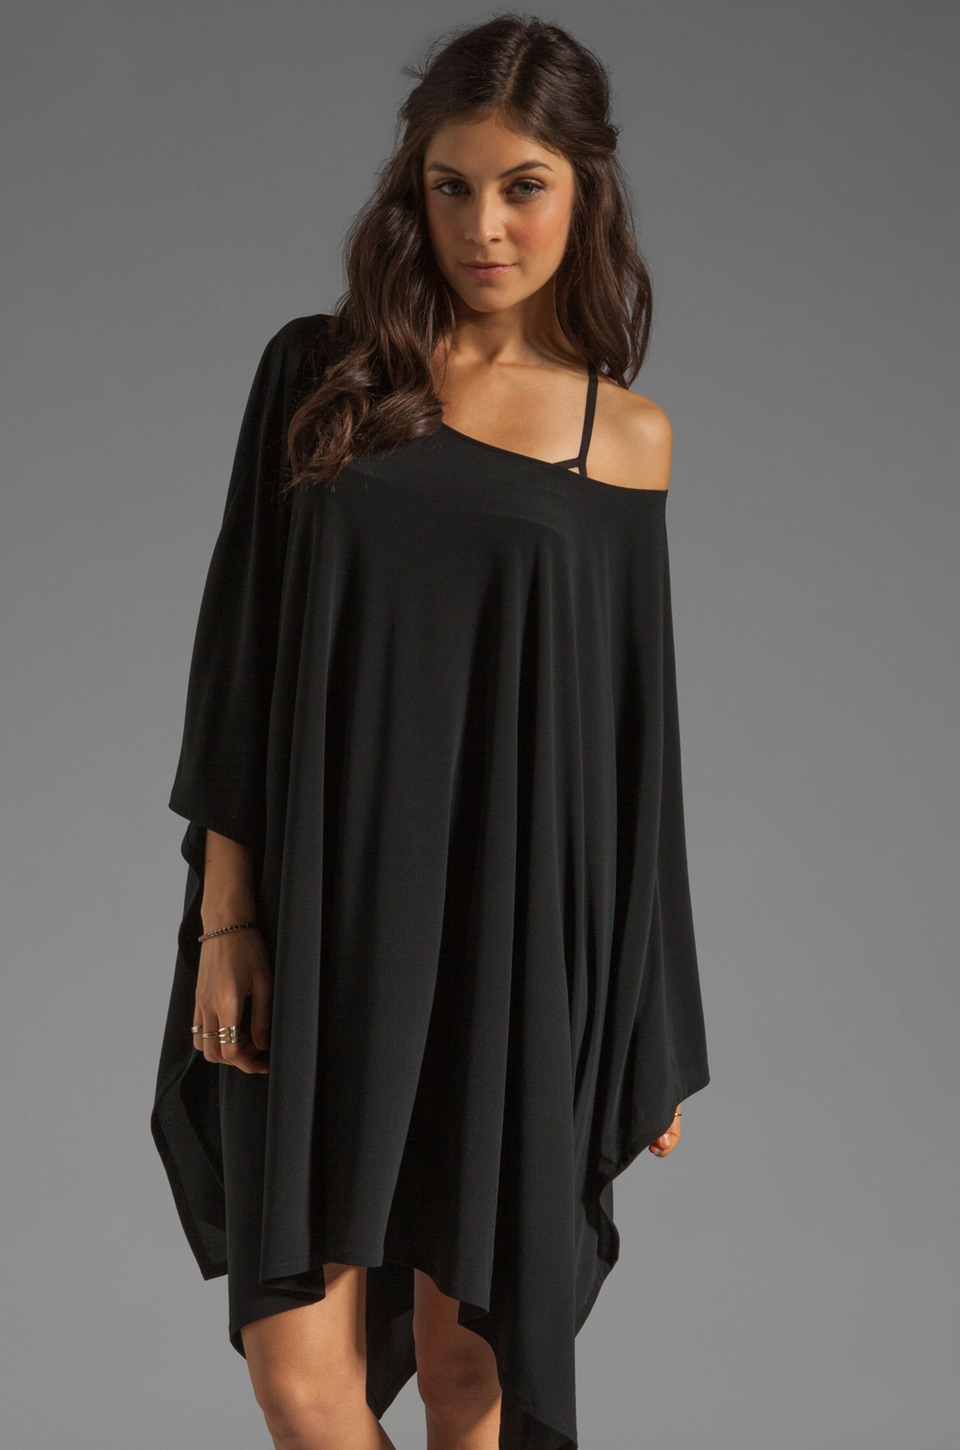 Norma Kamali Hole In A Square Cover Up in Black